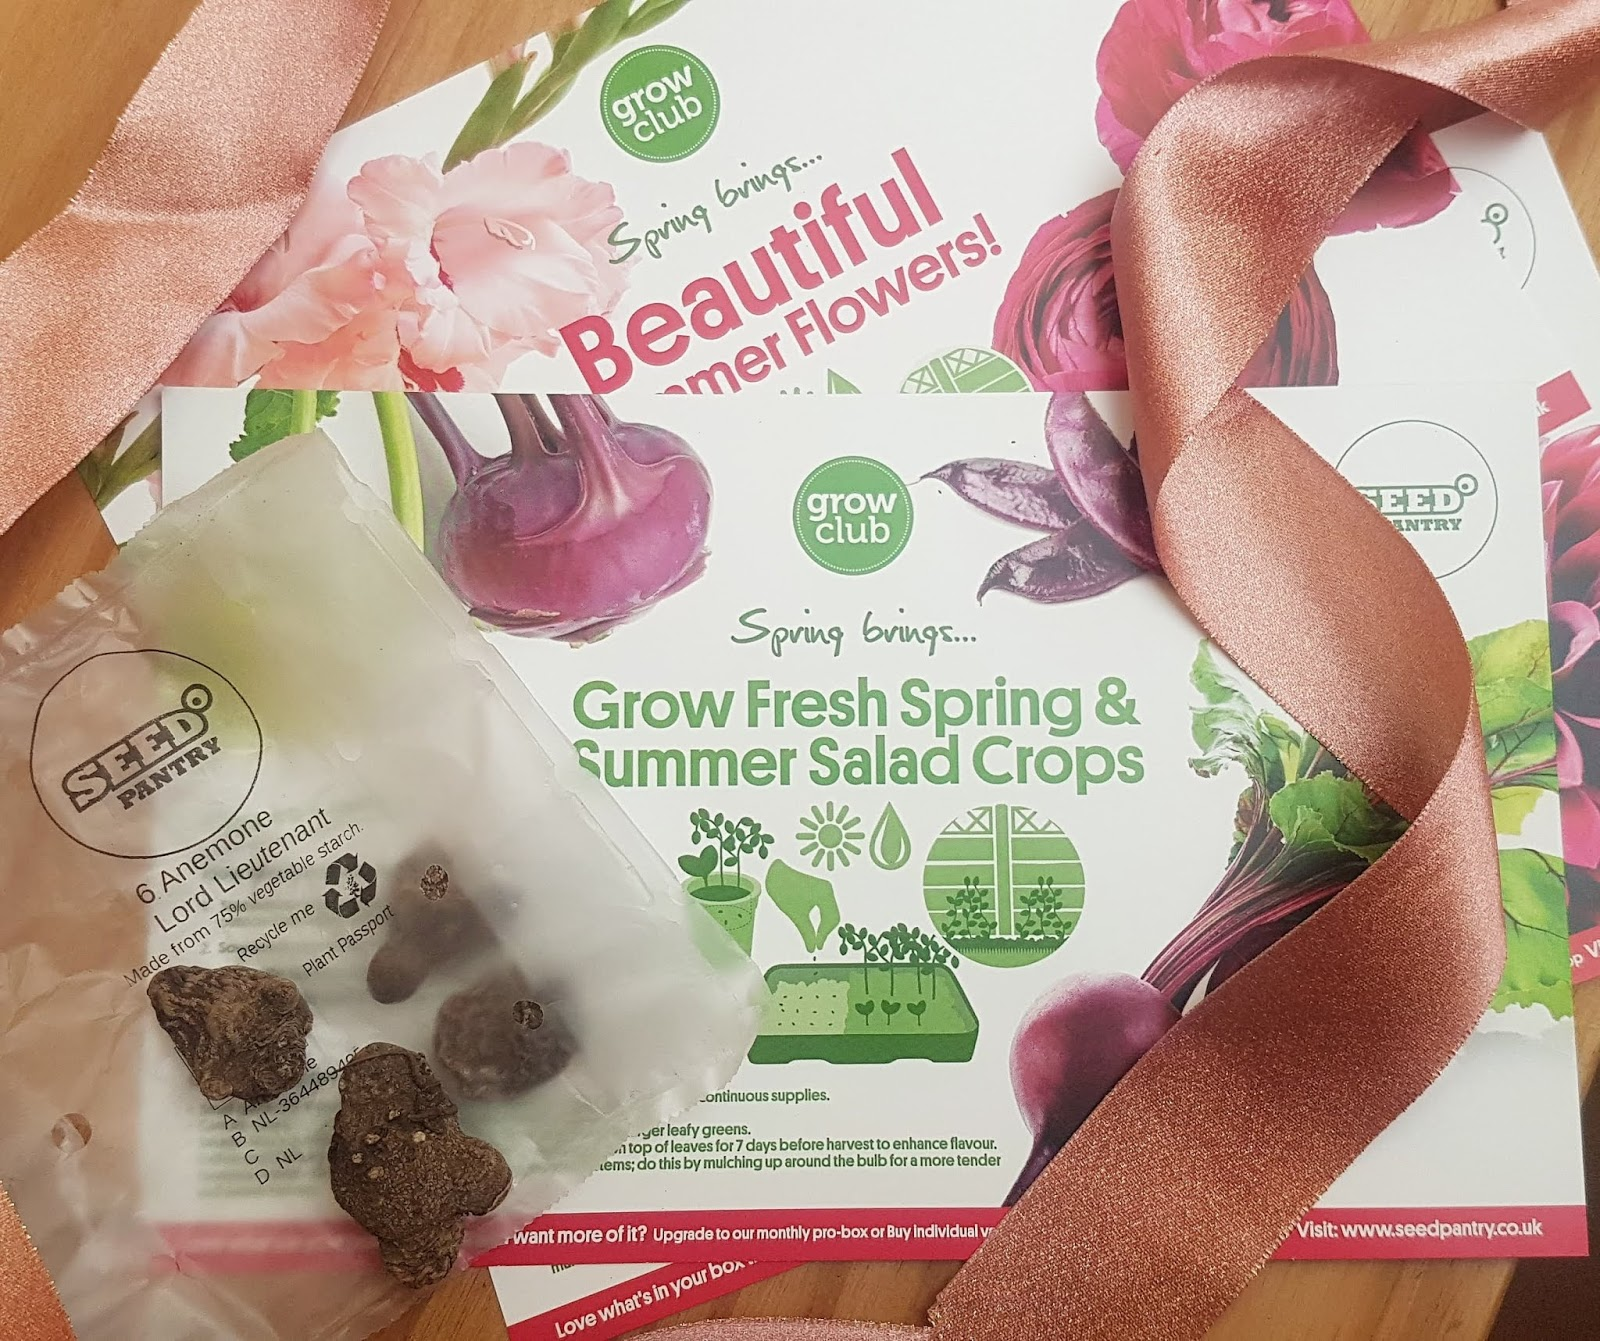 Gifts for Gardeners Review - Seed Pantry Grow Club Review